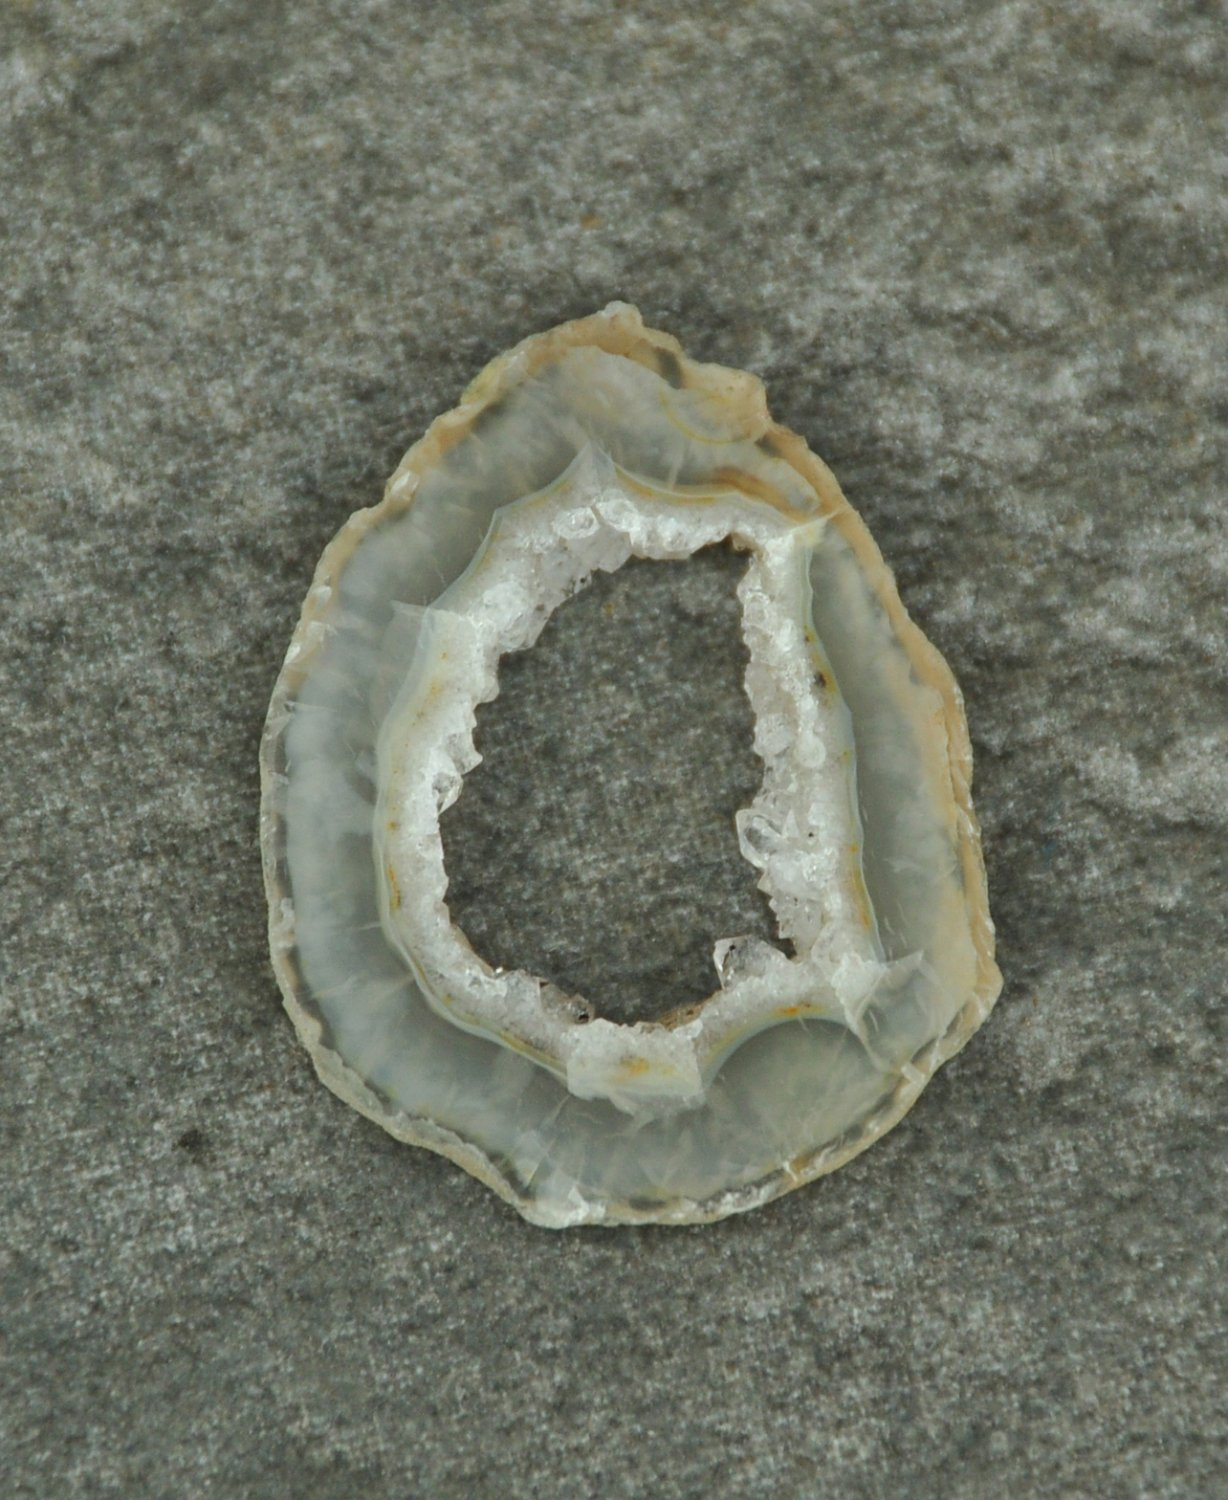 Small Druzy Agate Geode Slice #5 Undrilled for Jewelry Wire Wrap